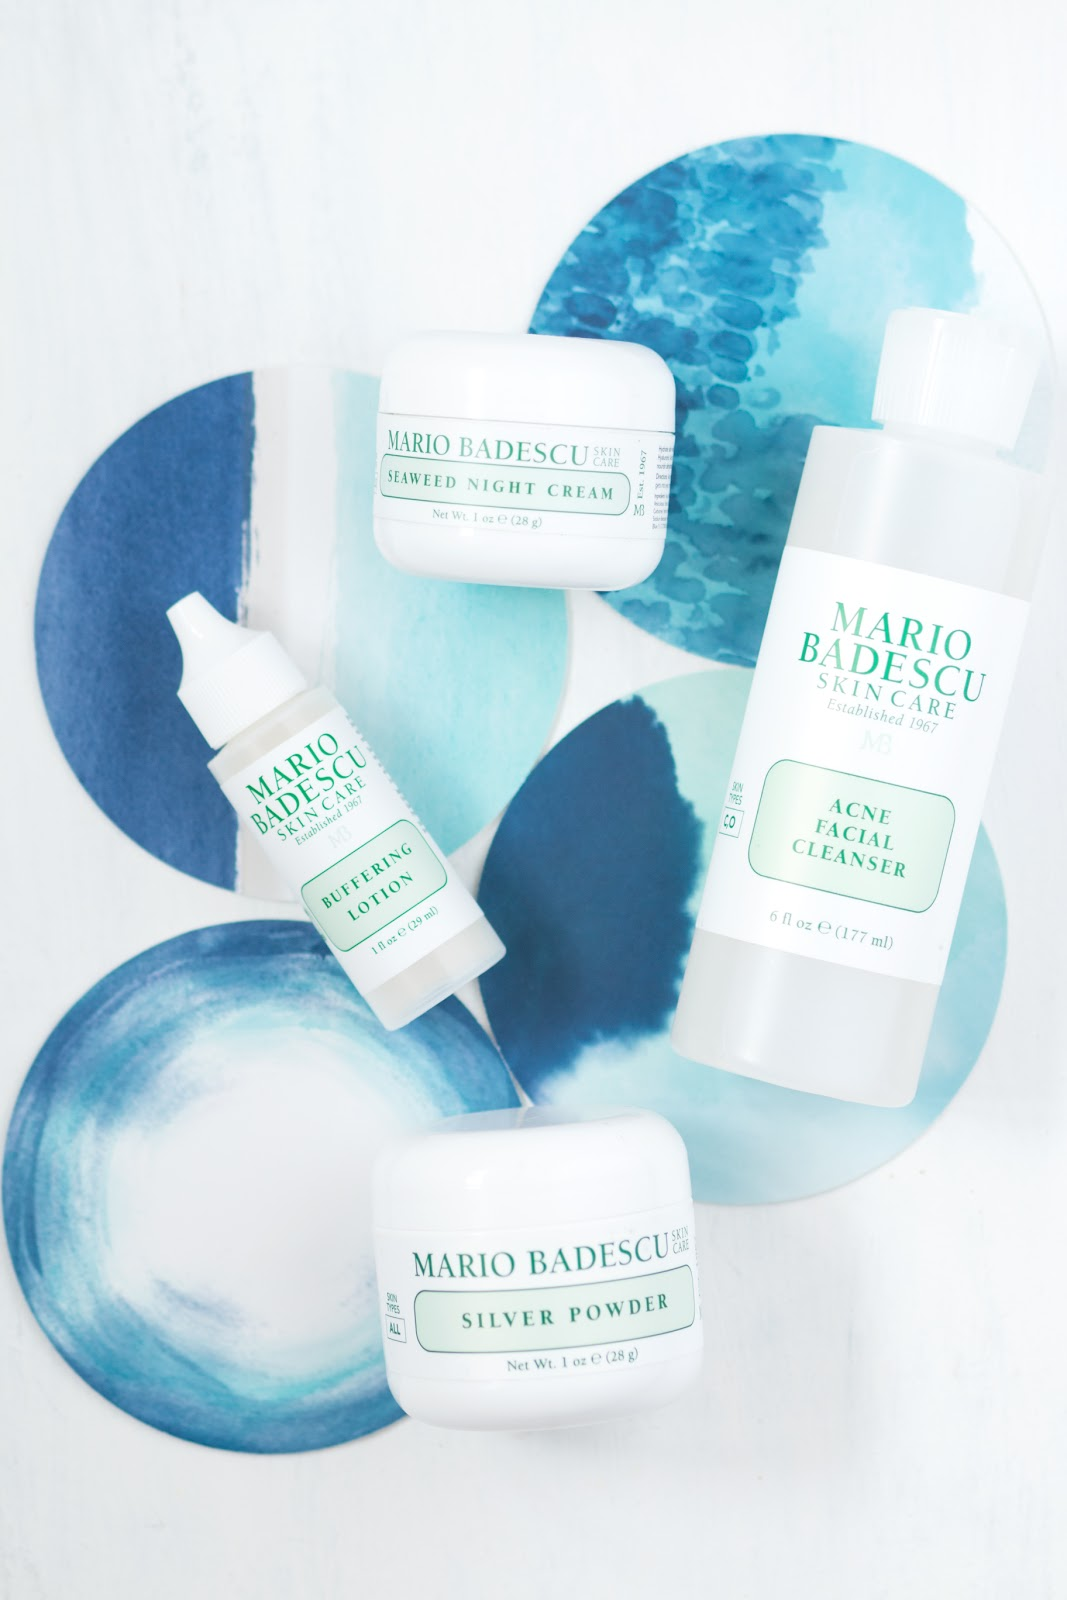 MARIO BADESCU FOR CLEAR SKIN